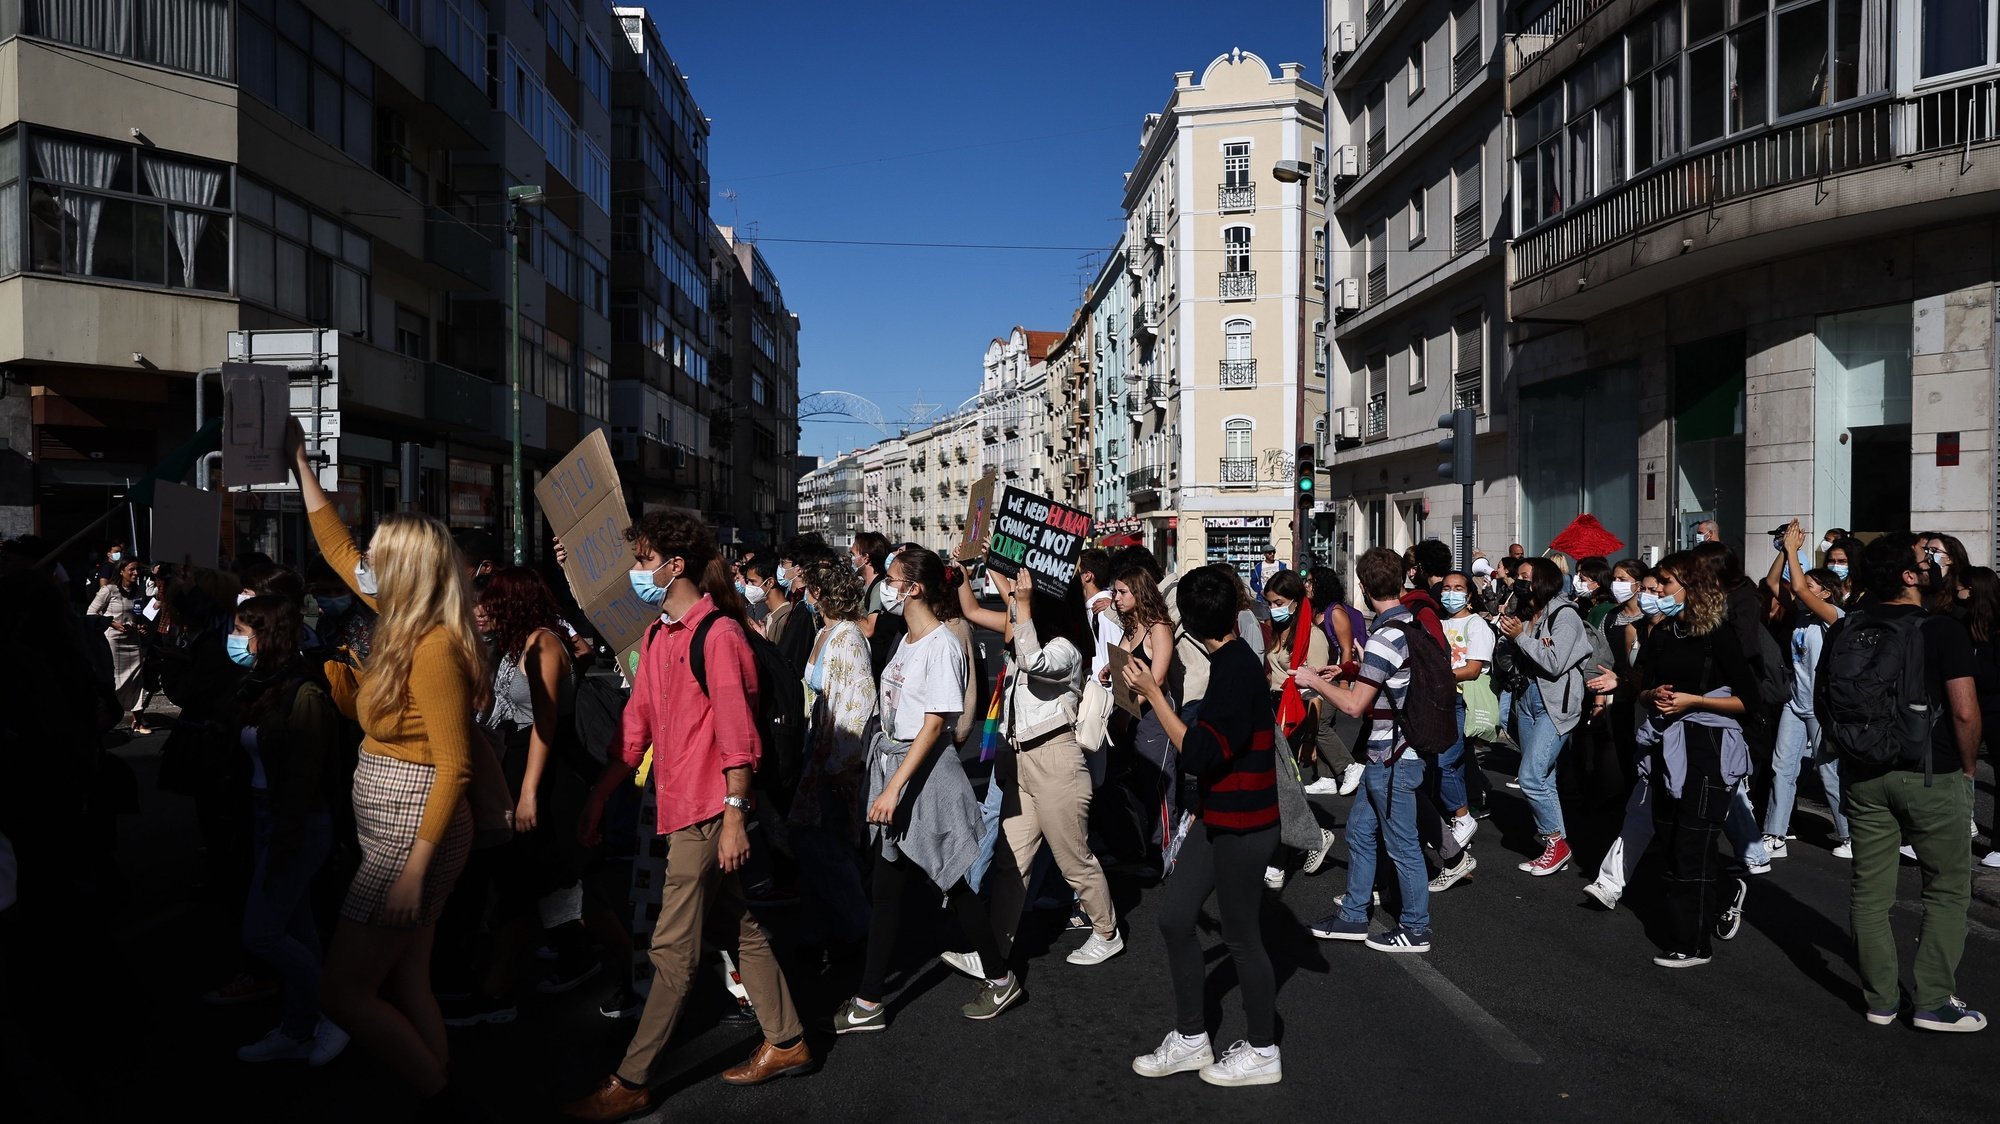 Students attend the Global Climate Strike Demonstration to demand fast climate action from world leaders, demanding to include the energy, transport, and agro-forestry sectors and education, mining, and urbanization, in Lisbon, Portugal, 22 October 2021. MARIO CRUZ/LUSA